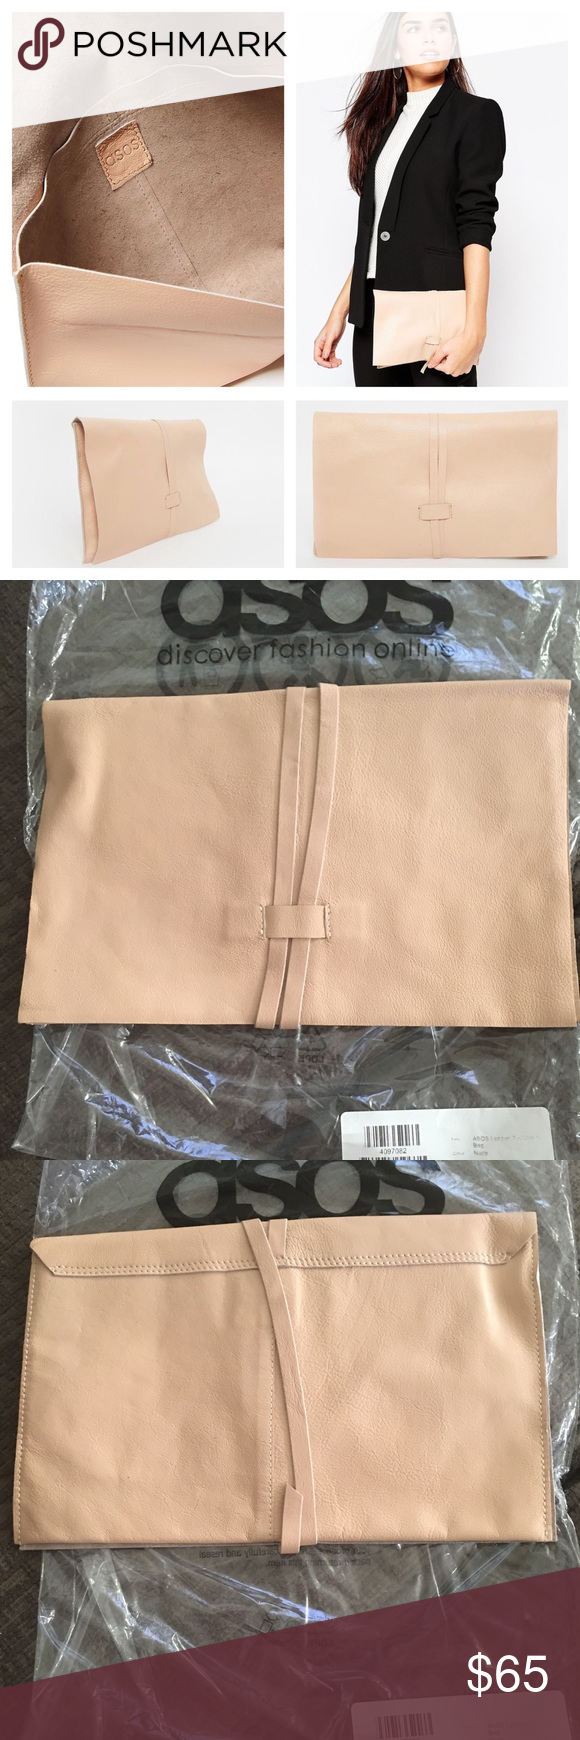 ASOS LEATHER TIE CLUTCH BAG IN NUDE Brand new comes with original bag with tag outside plastic bag. ASOS Leather tie clutch bag in nude. Perfect to wear with any ensemble. ASOS Bags Clutches & Wristlets